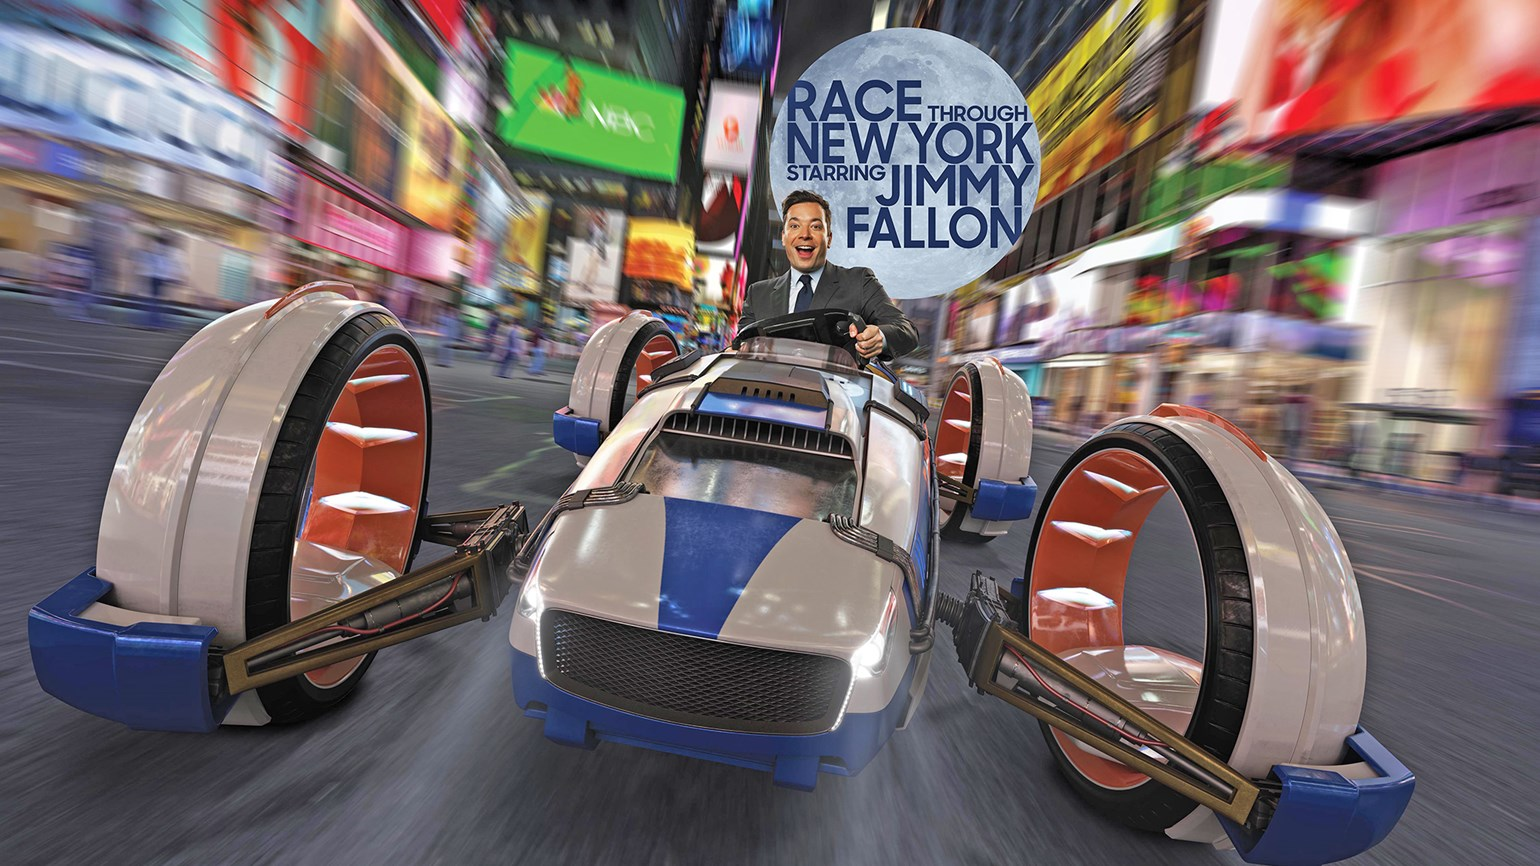 Universal Orlando will open Jimmy Fallon ride in April